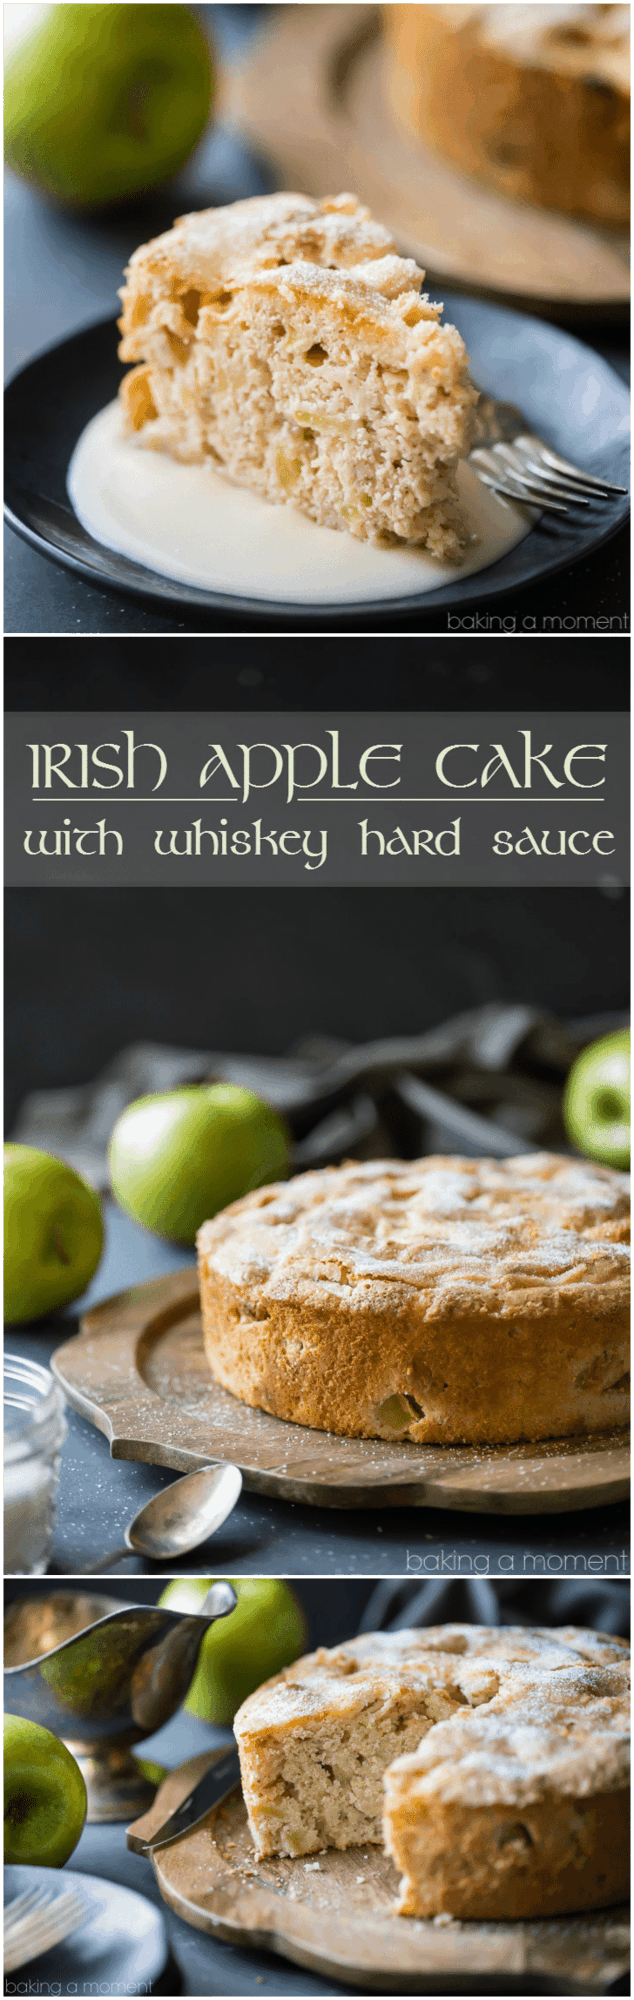 I made this Irish Apple Cake for St. Patrick's Day, but honestly it was so good I'd eat it any time of year! There was just a hint of cinnamon, allowing the tart apple flavor to really shine. The whiskey hard sauce was the perfect creamy compliment!   food desserts cake